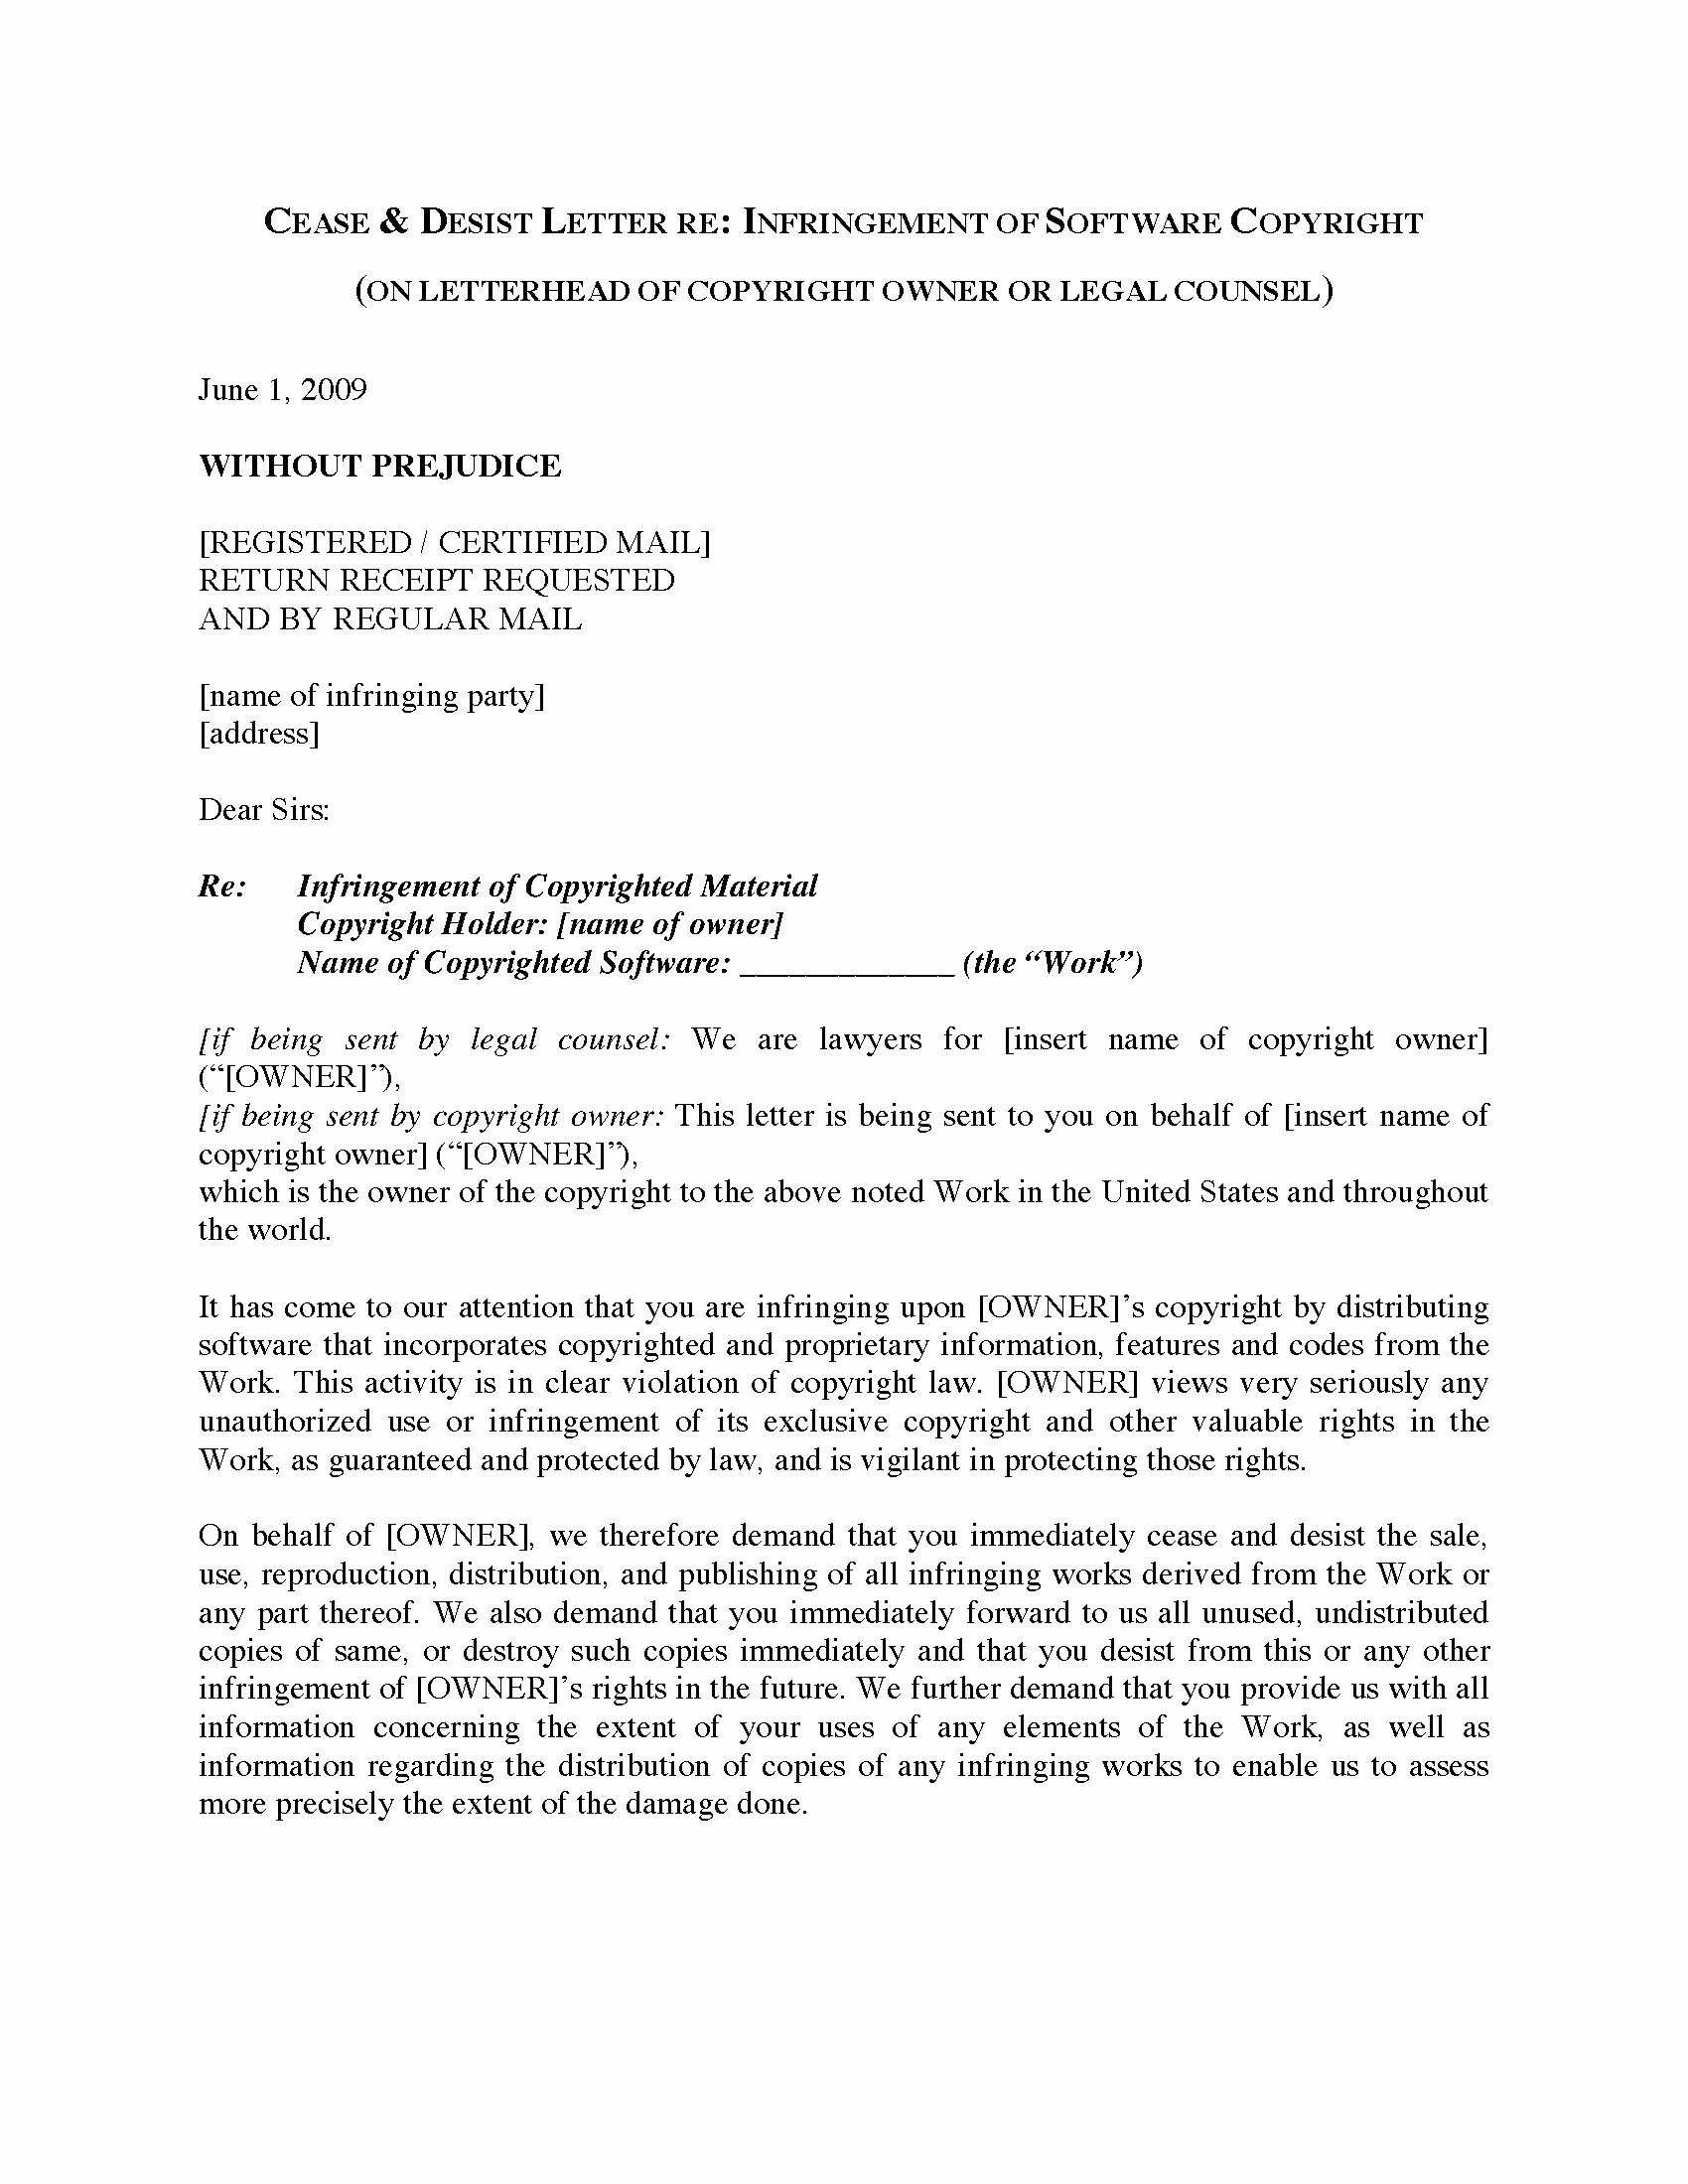 Letter Of Cease and Desist Fresh Usa Cease and Desist Letter Re software Copyright